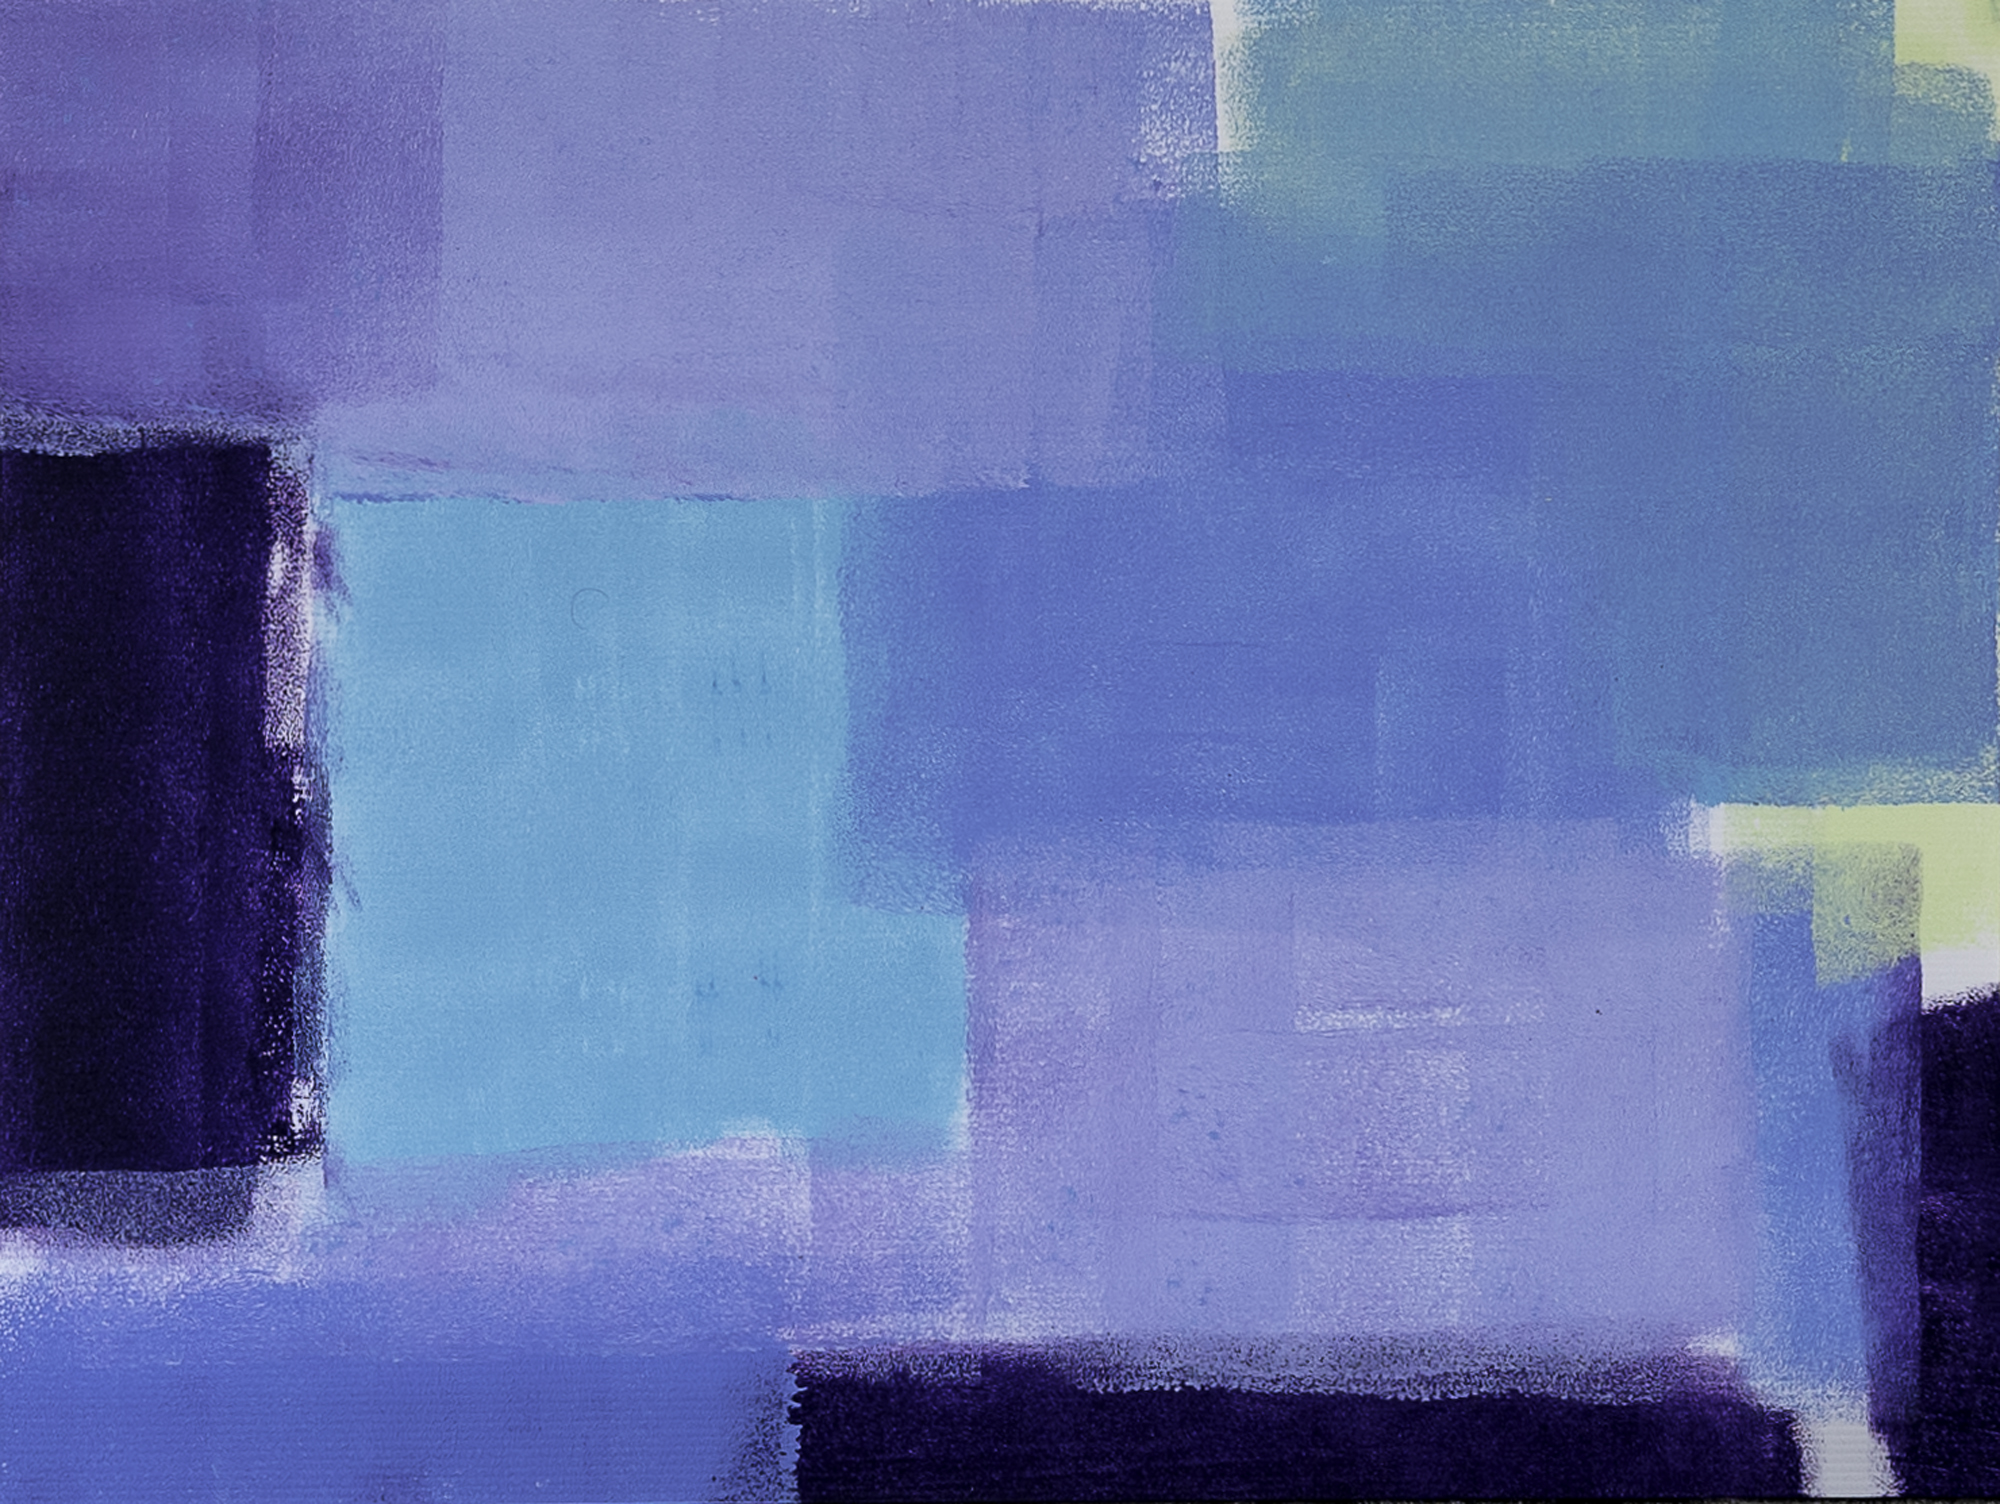 """""""Memoryscapes: Blurry Lines III No. 13"""""""